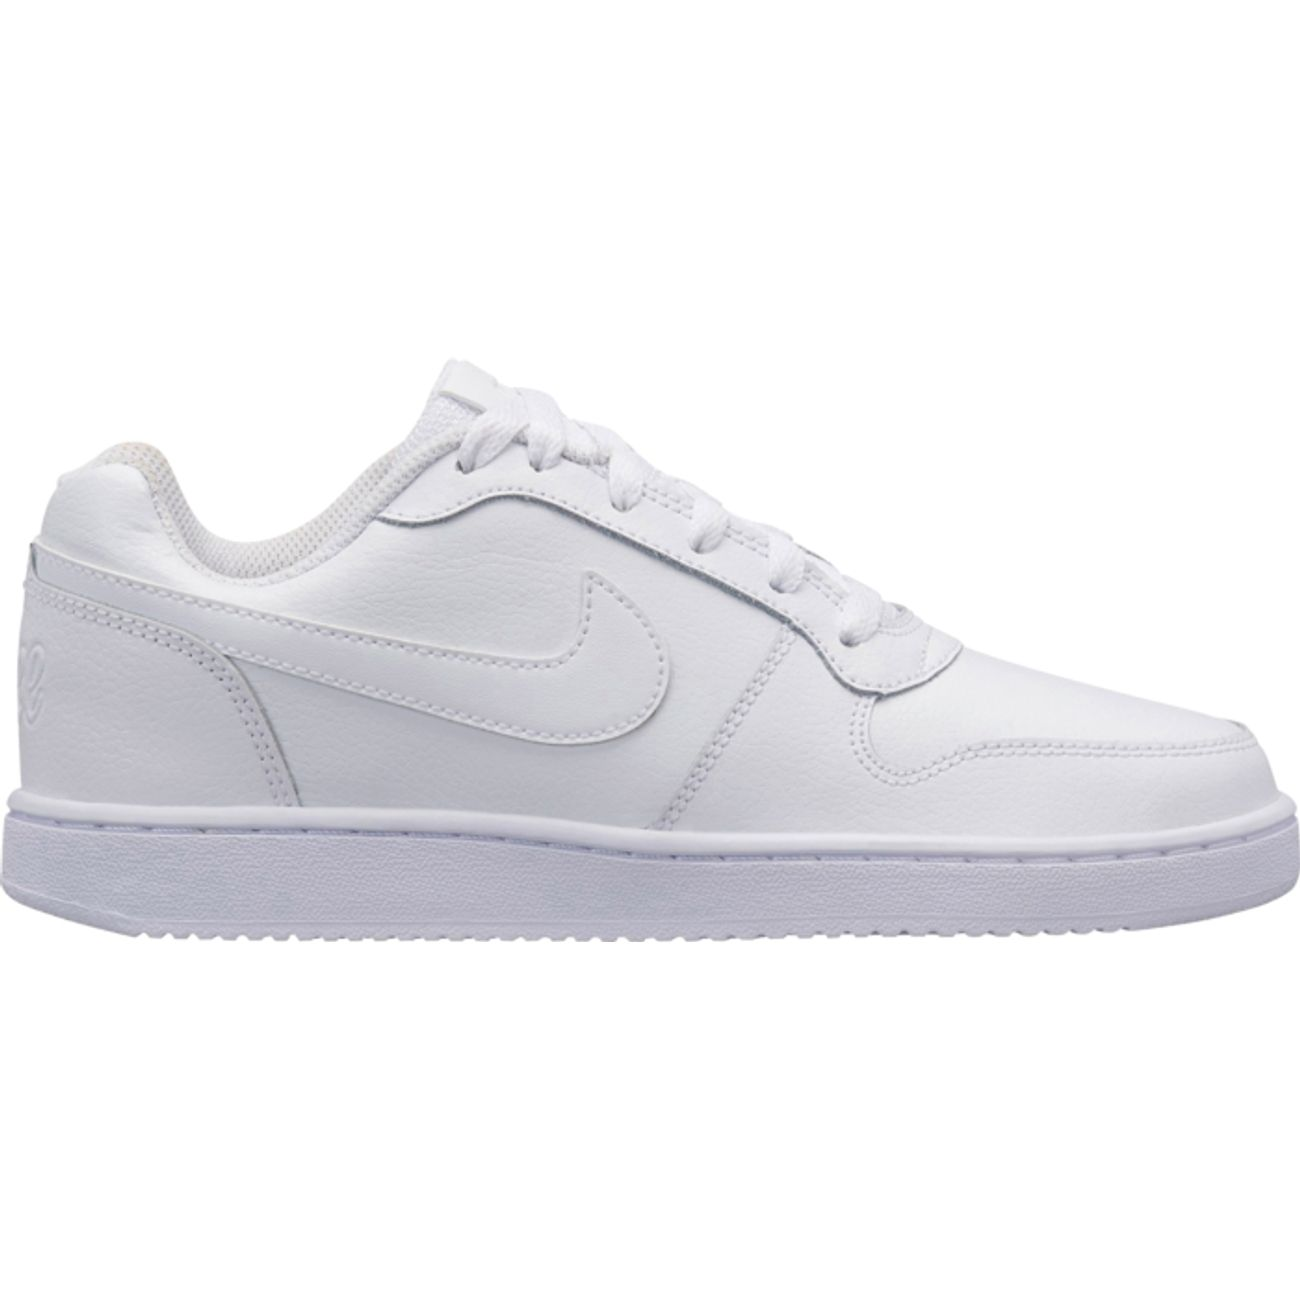 CHAUSSURES BASSES Basketball femme NIKE EBERNON LOW